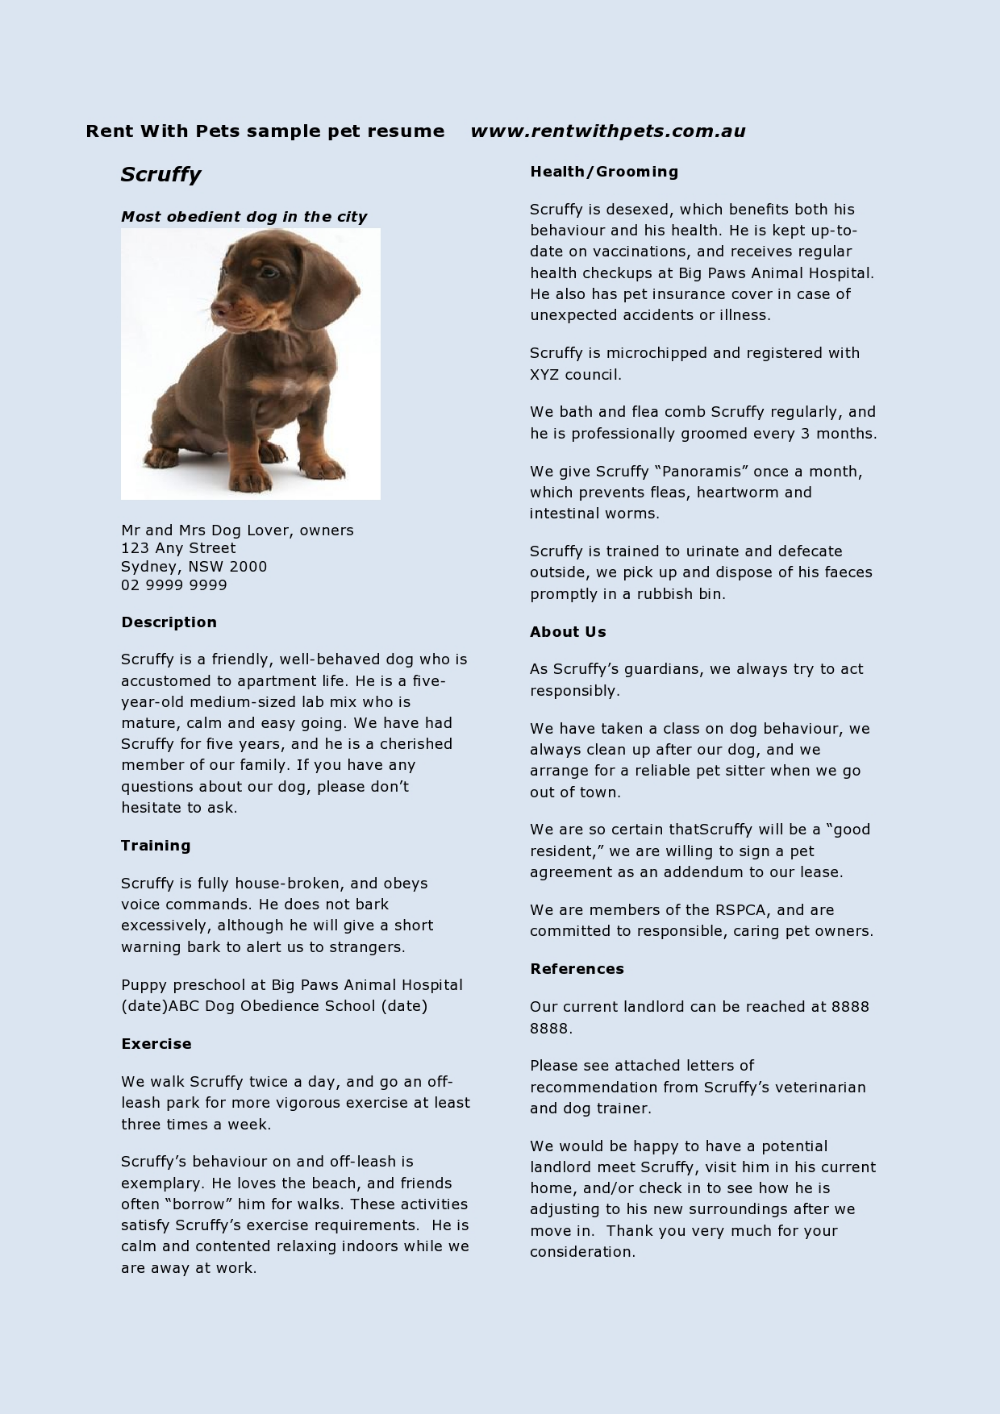 Pet Resumes How They Can Help Your Veterinary Clients Rent With Pets Blog Post Animal Shelter Volunteer Dog Care Pets